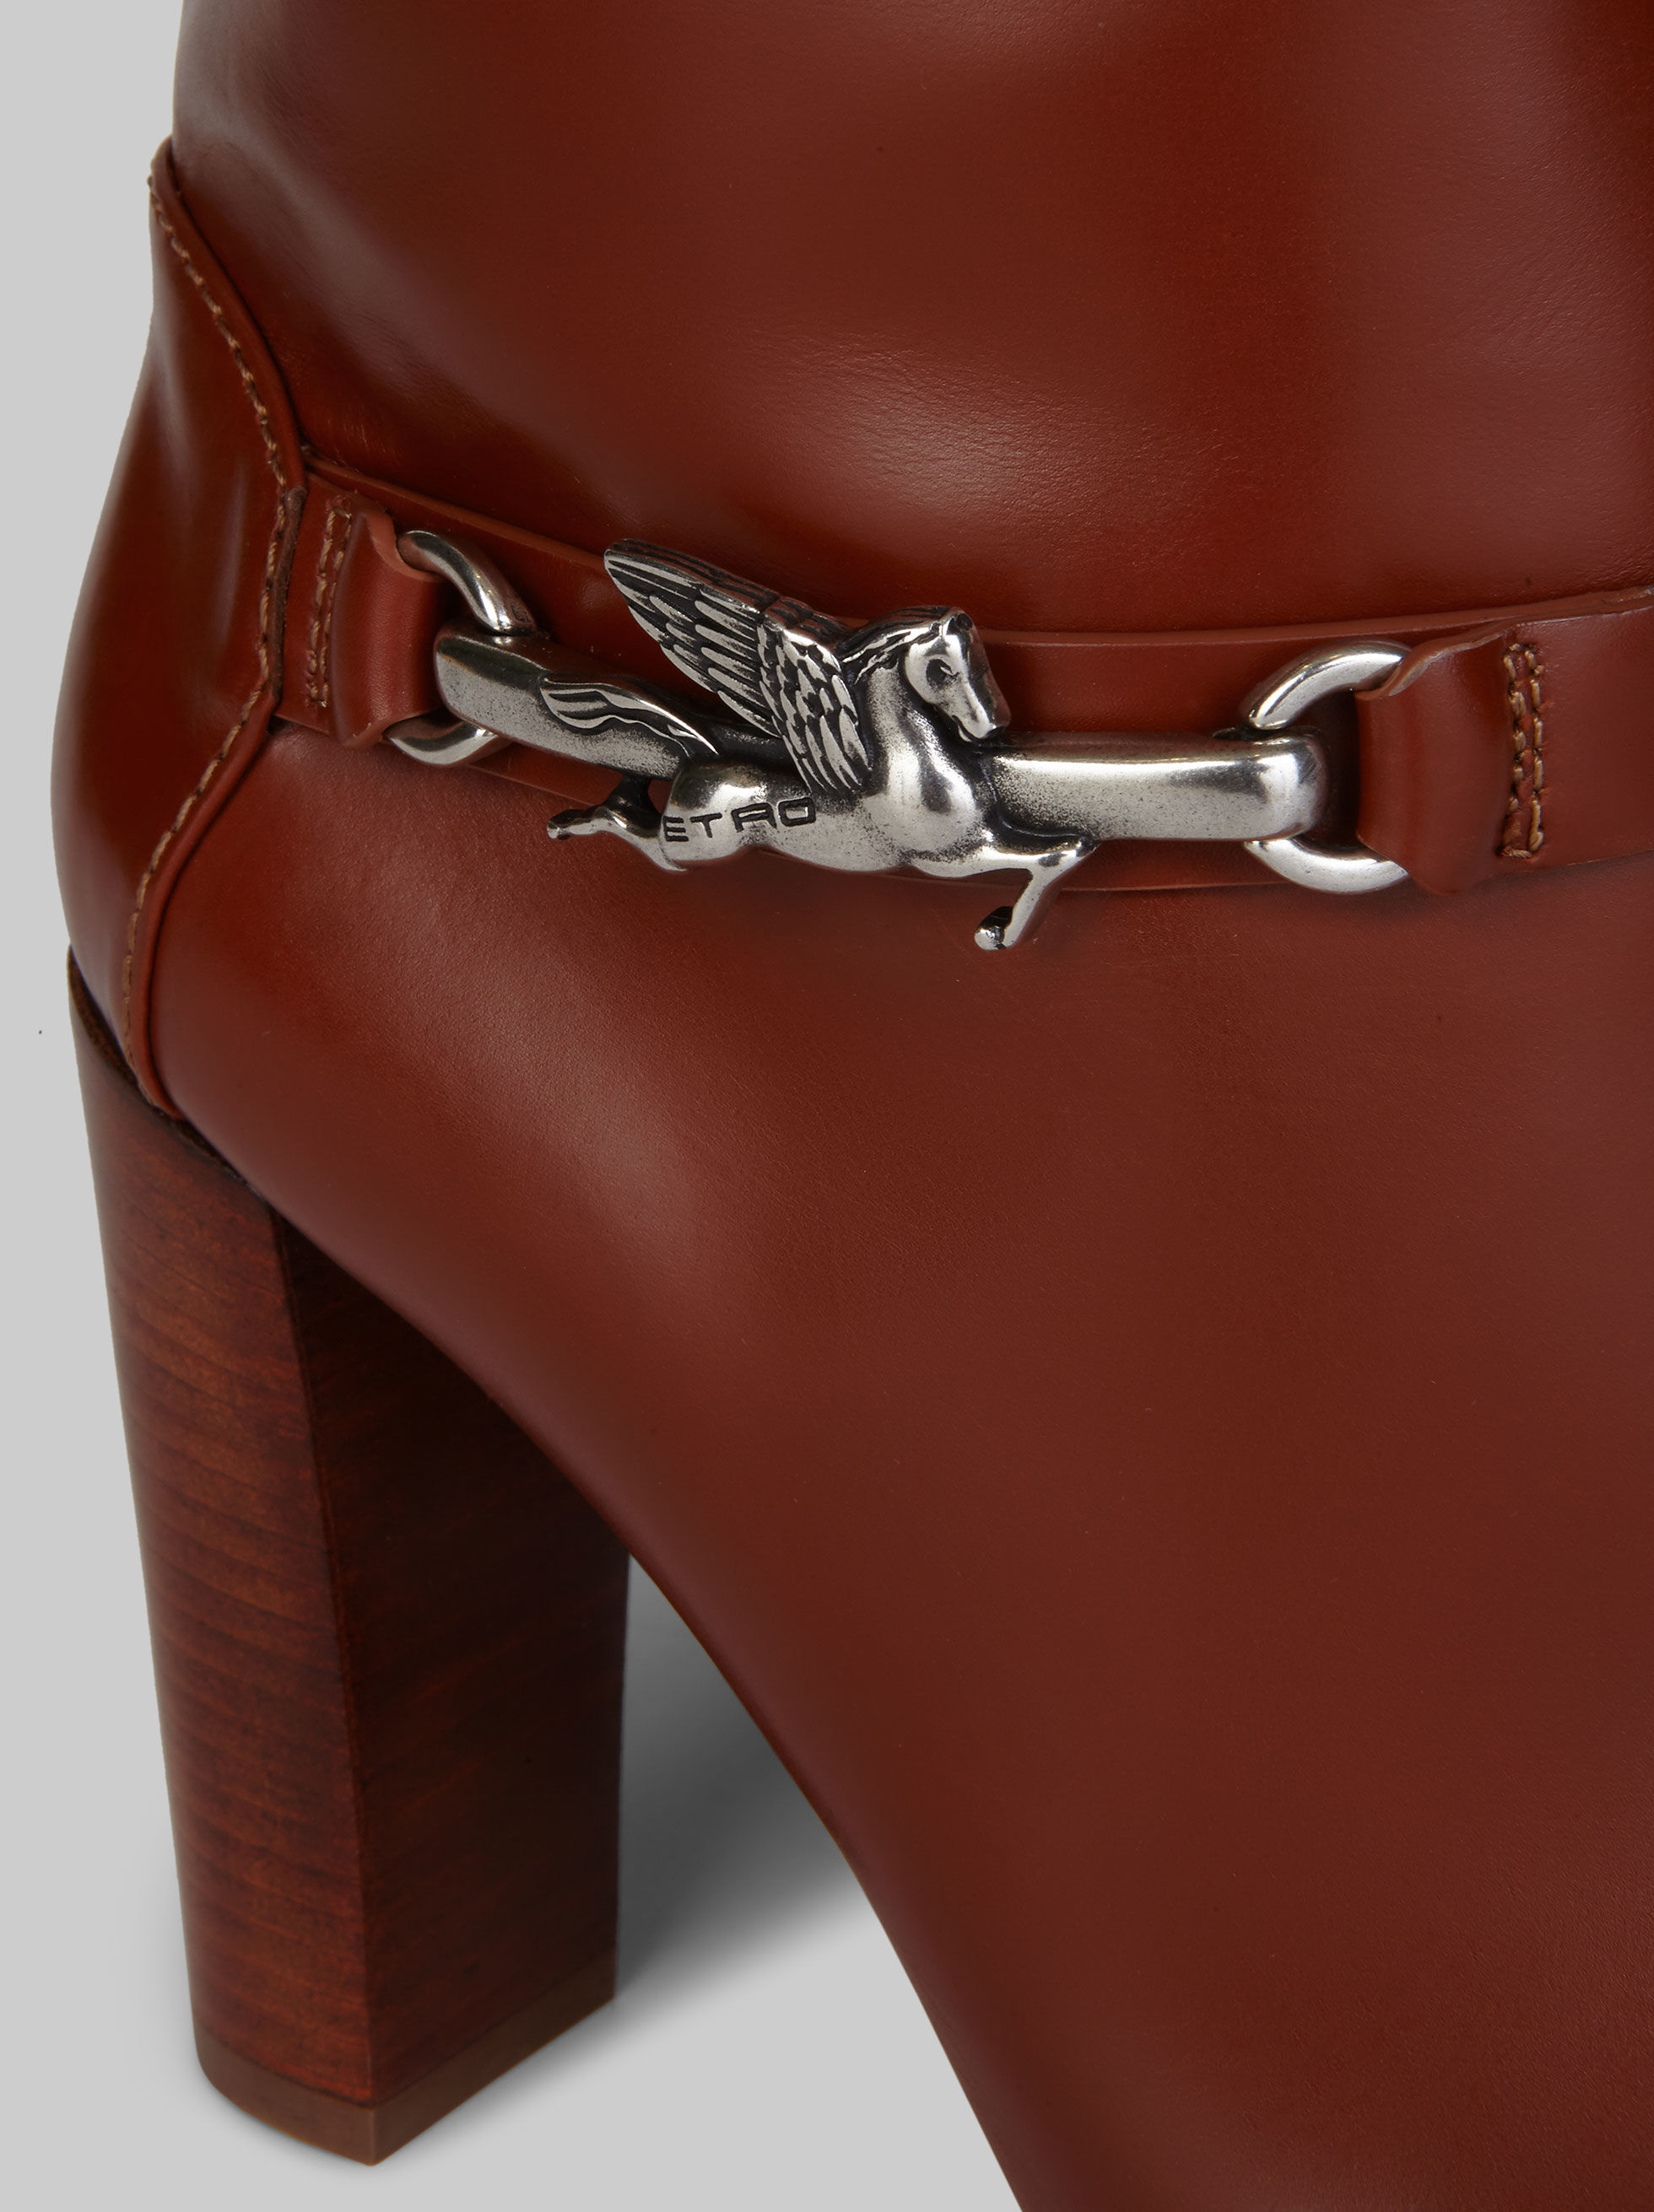 LEATHER BOOTS WITH PEGASO